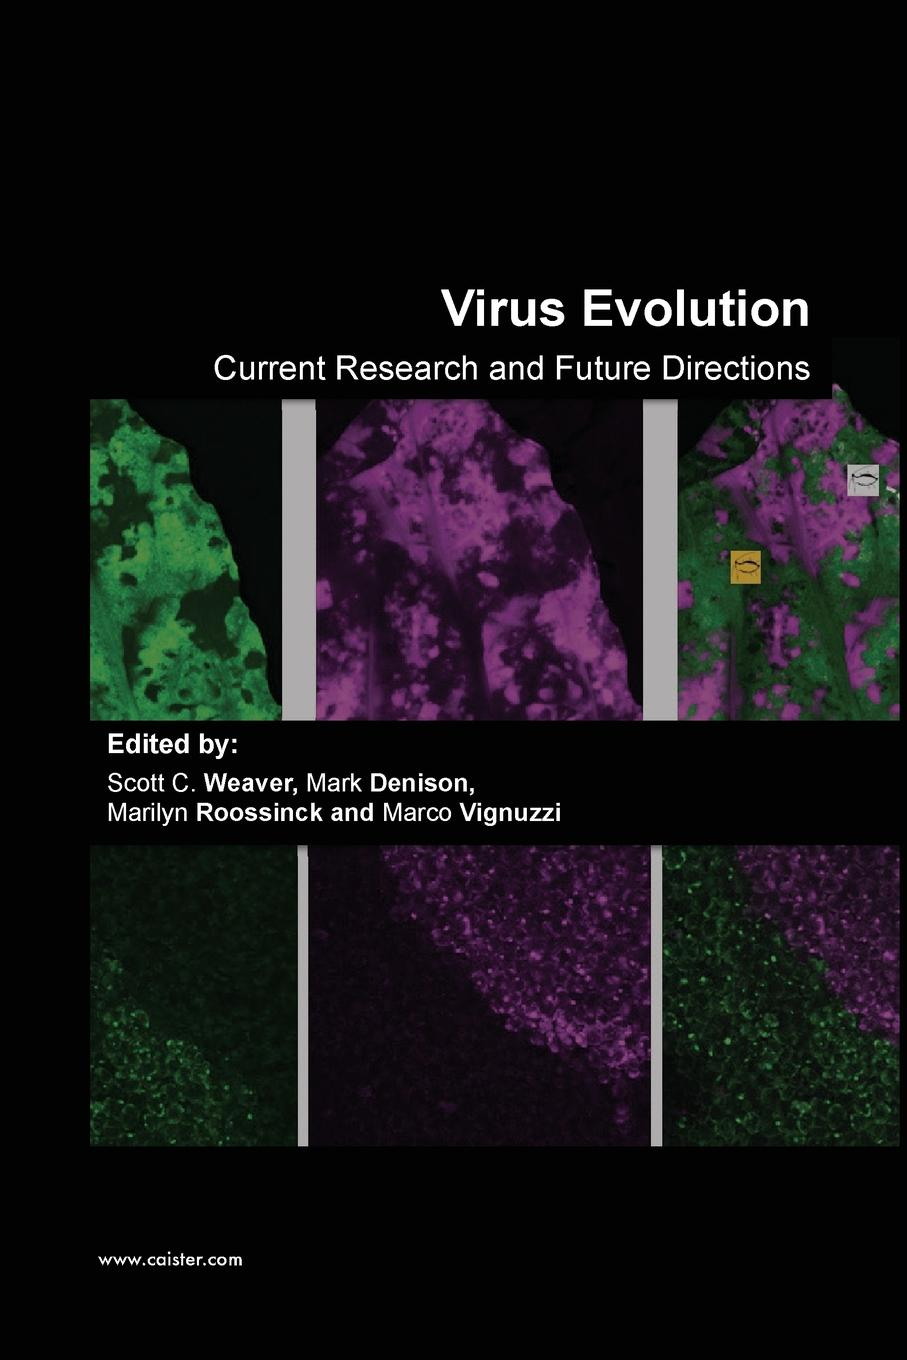 Virus Evolution: Current Research and Future Directions